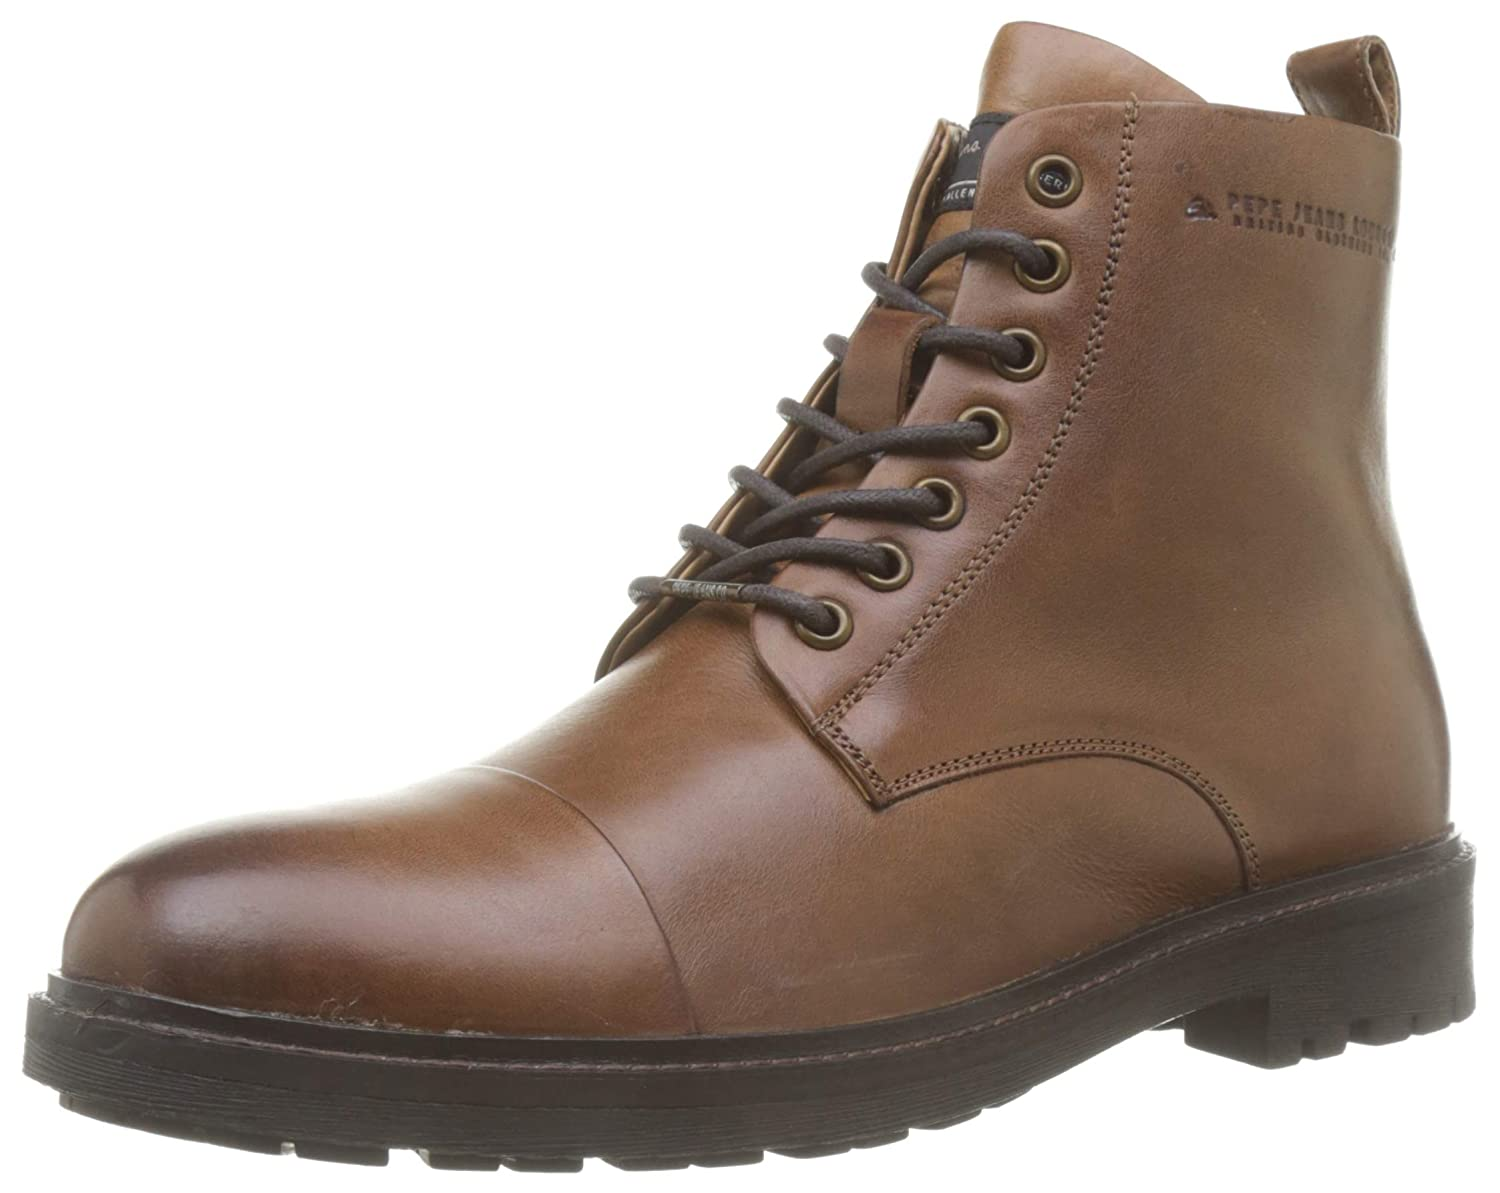 Pepe Jeans Porter Boot, Stivali Desert Boots Uomo: Amazon.it